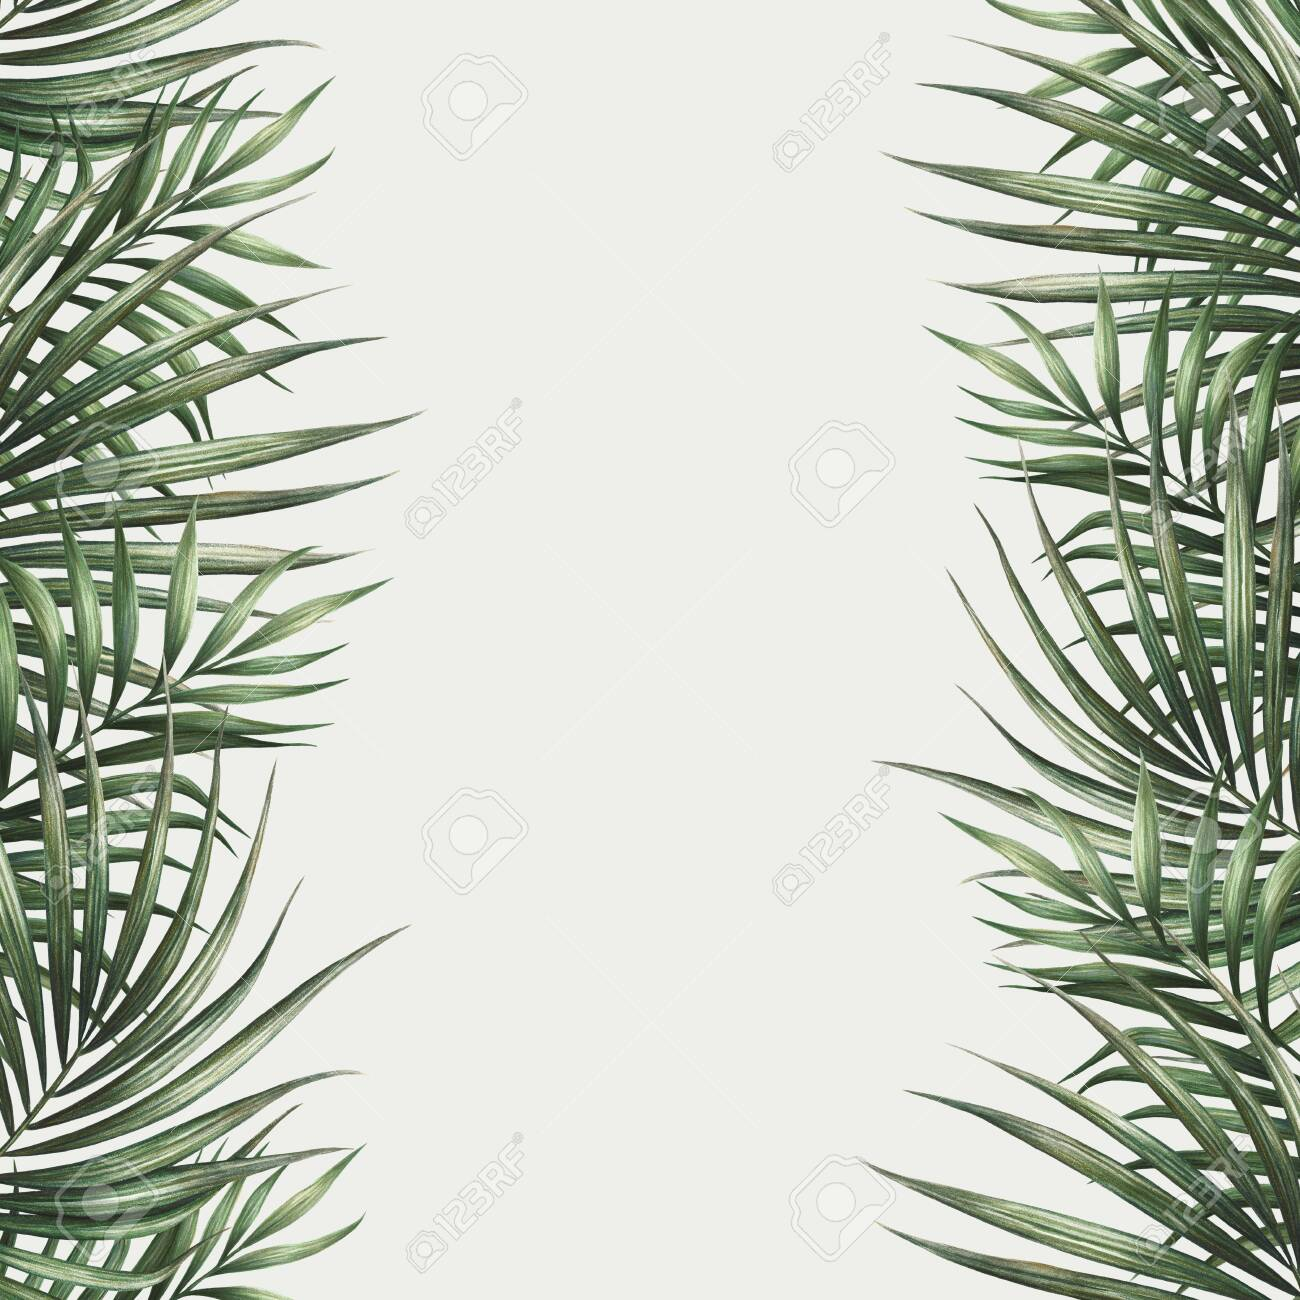 Palm leaves border design. Tropical watercolor background. Palm tree leaves greeting card or wedding invitation. Tropical frame decoration. - 142106259